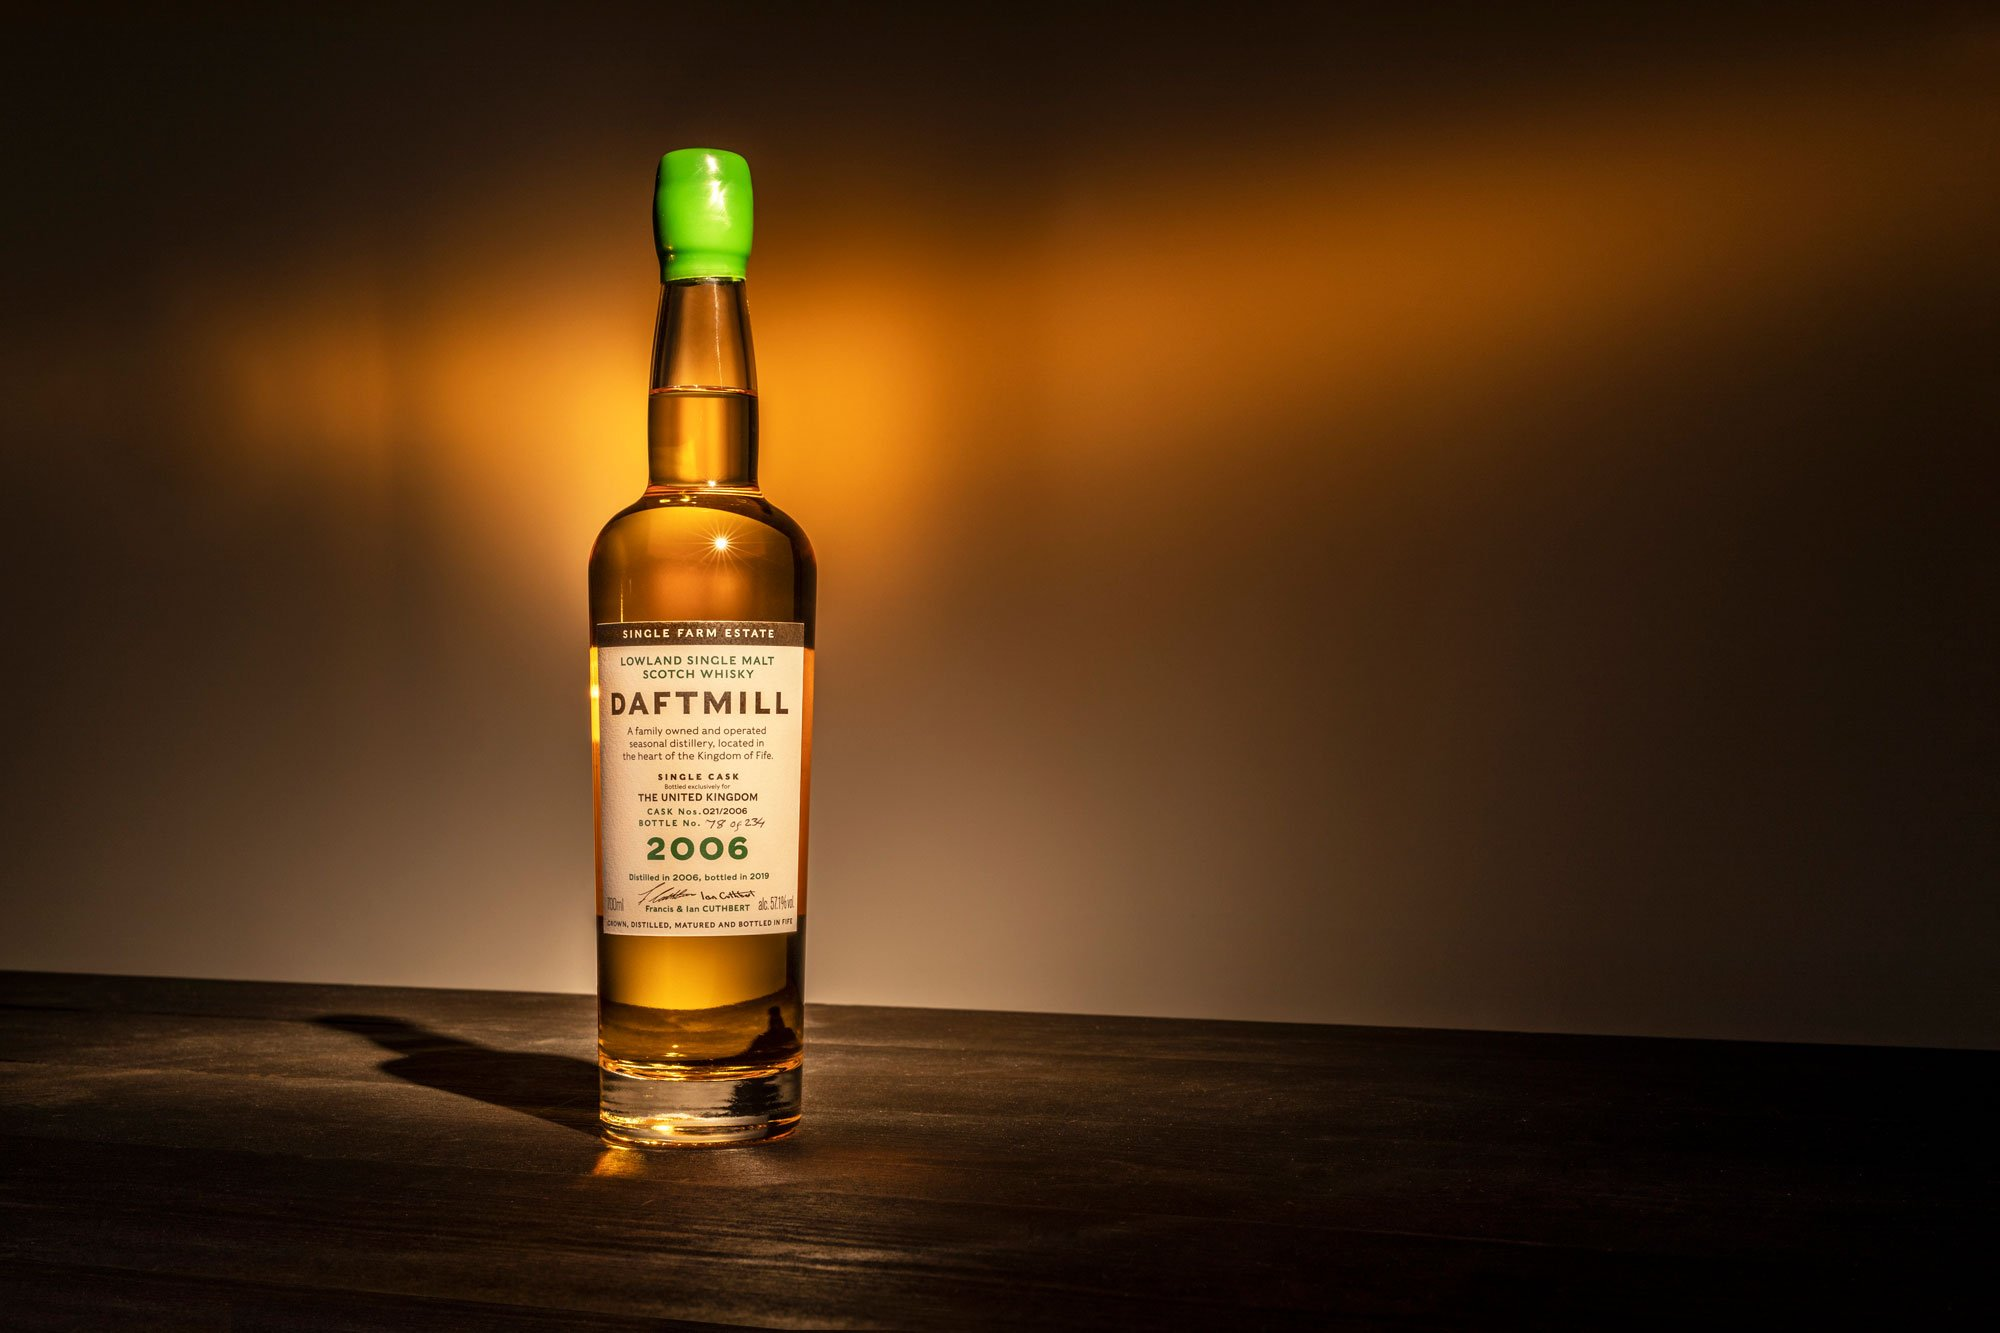 Daftmill Single Cask